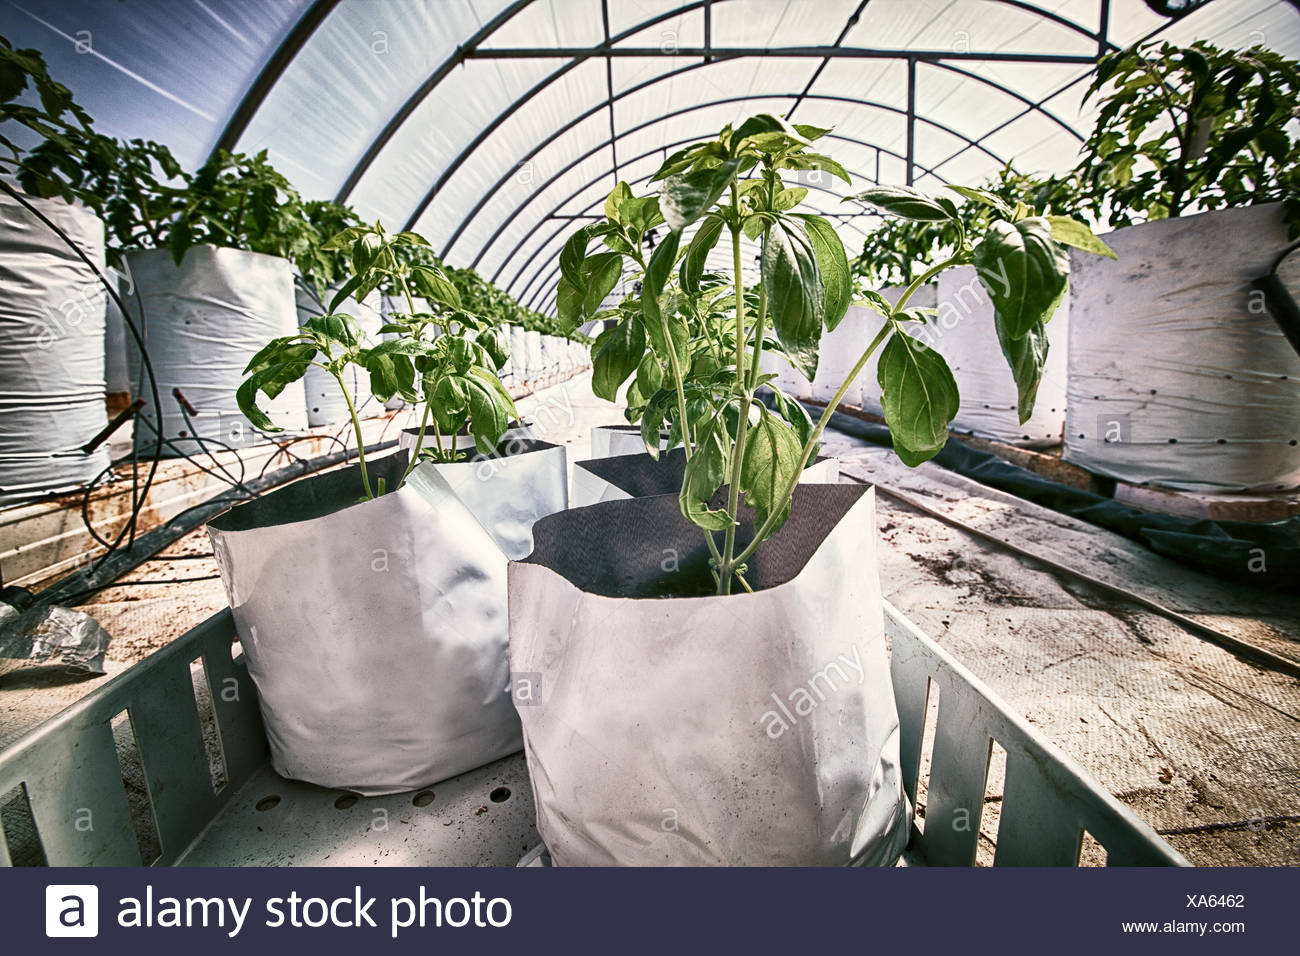 Tomato plants in growth bags inside poly tunnel - Stock Image